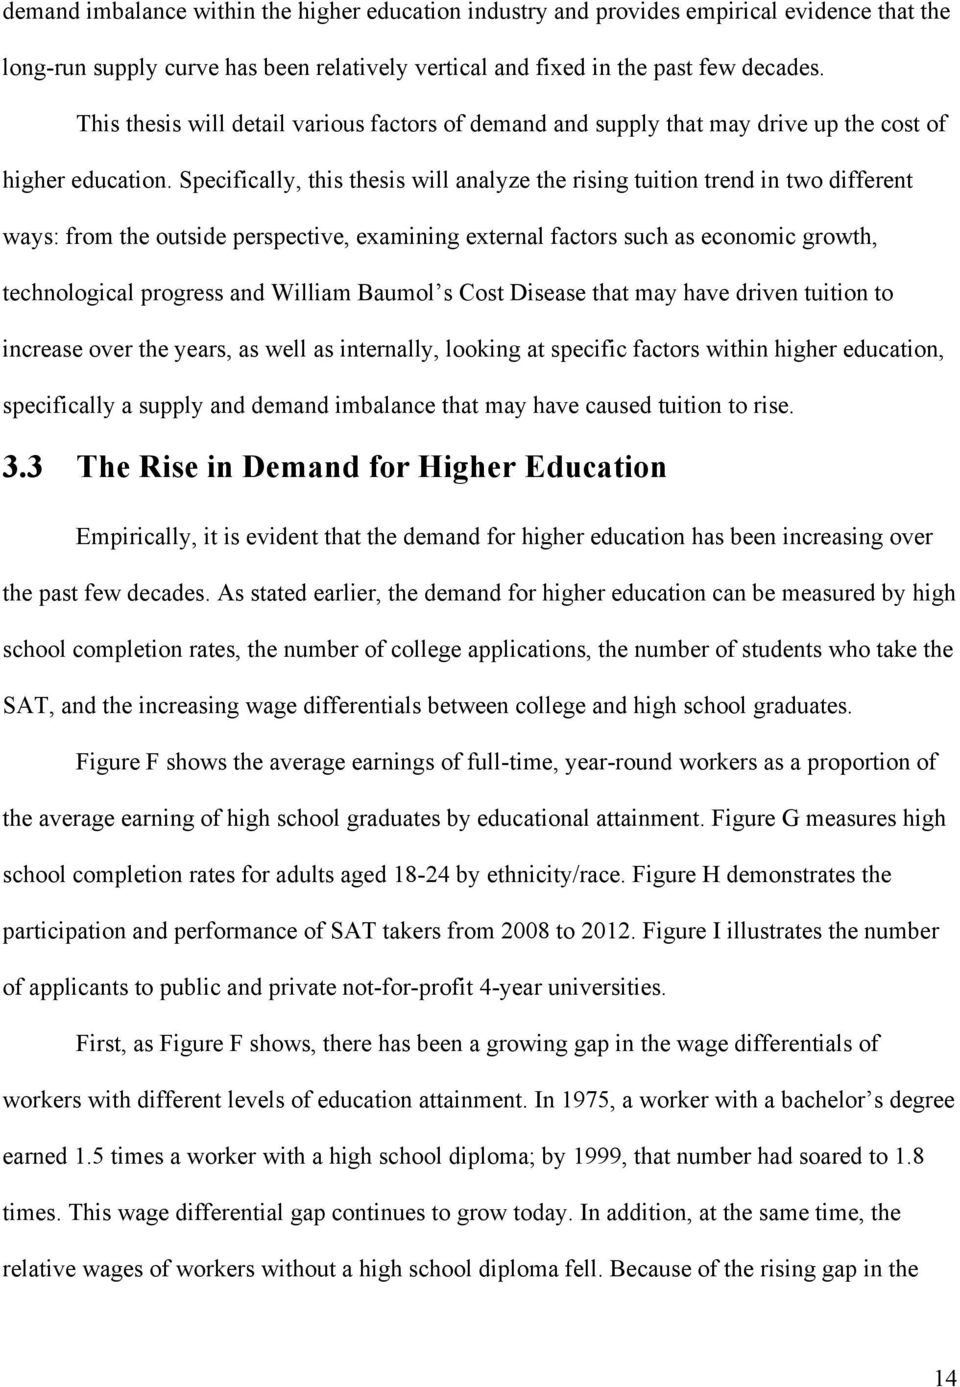 Rising cost of education essay